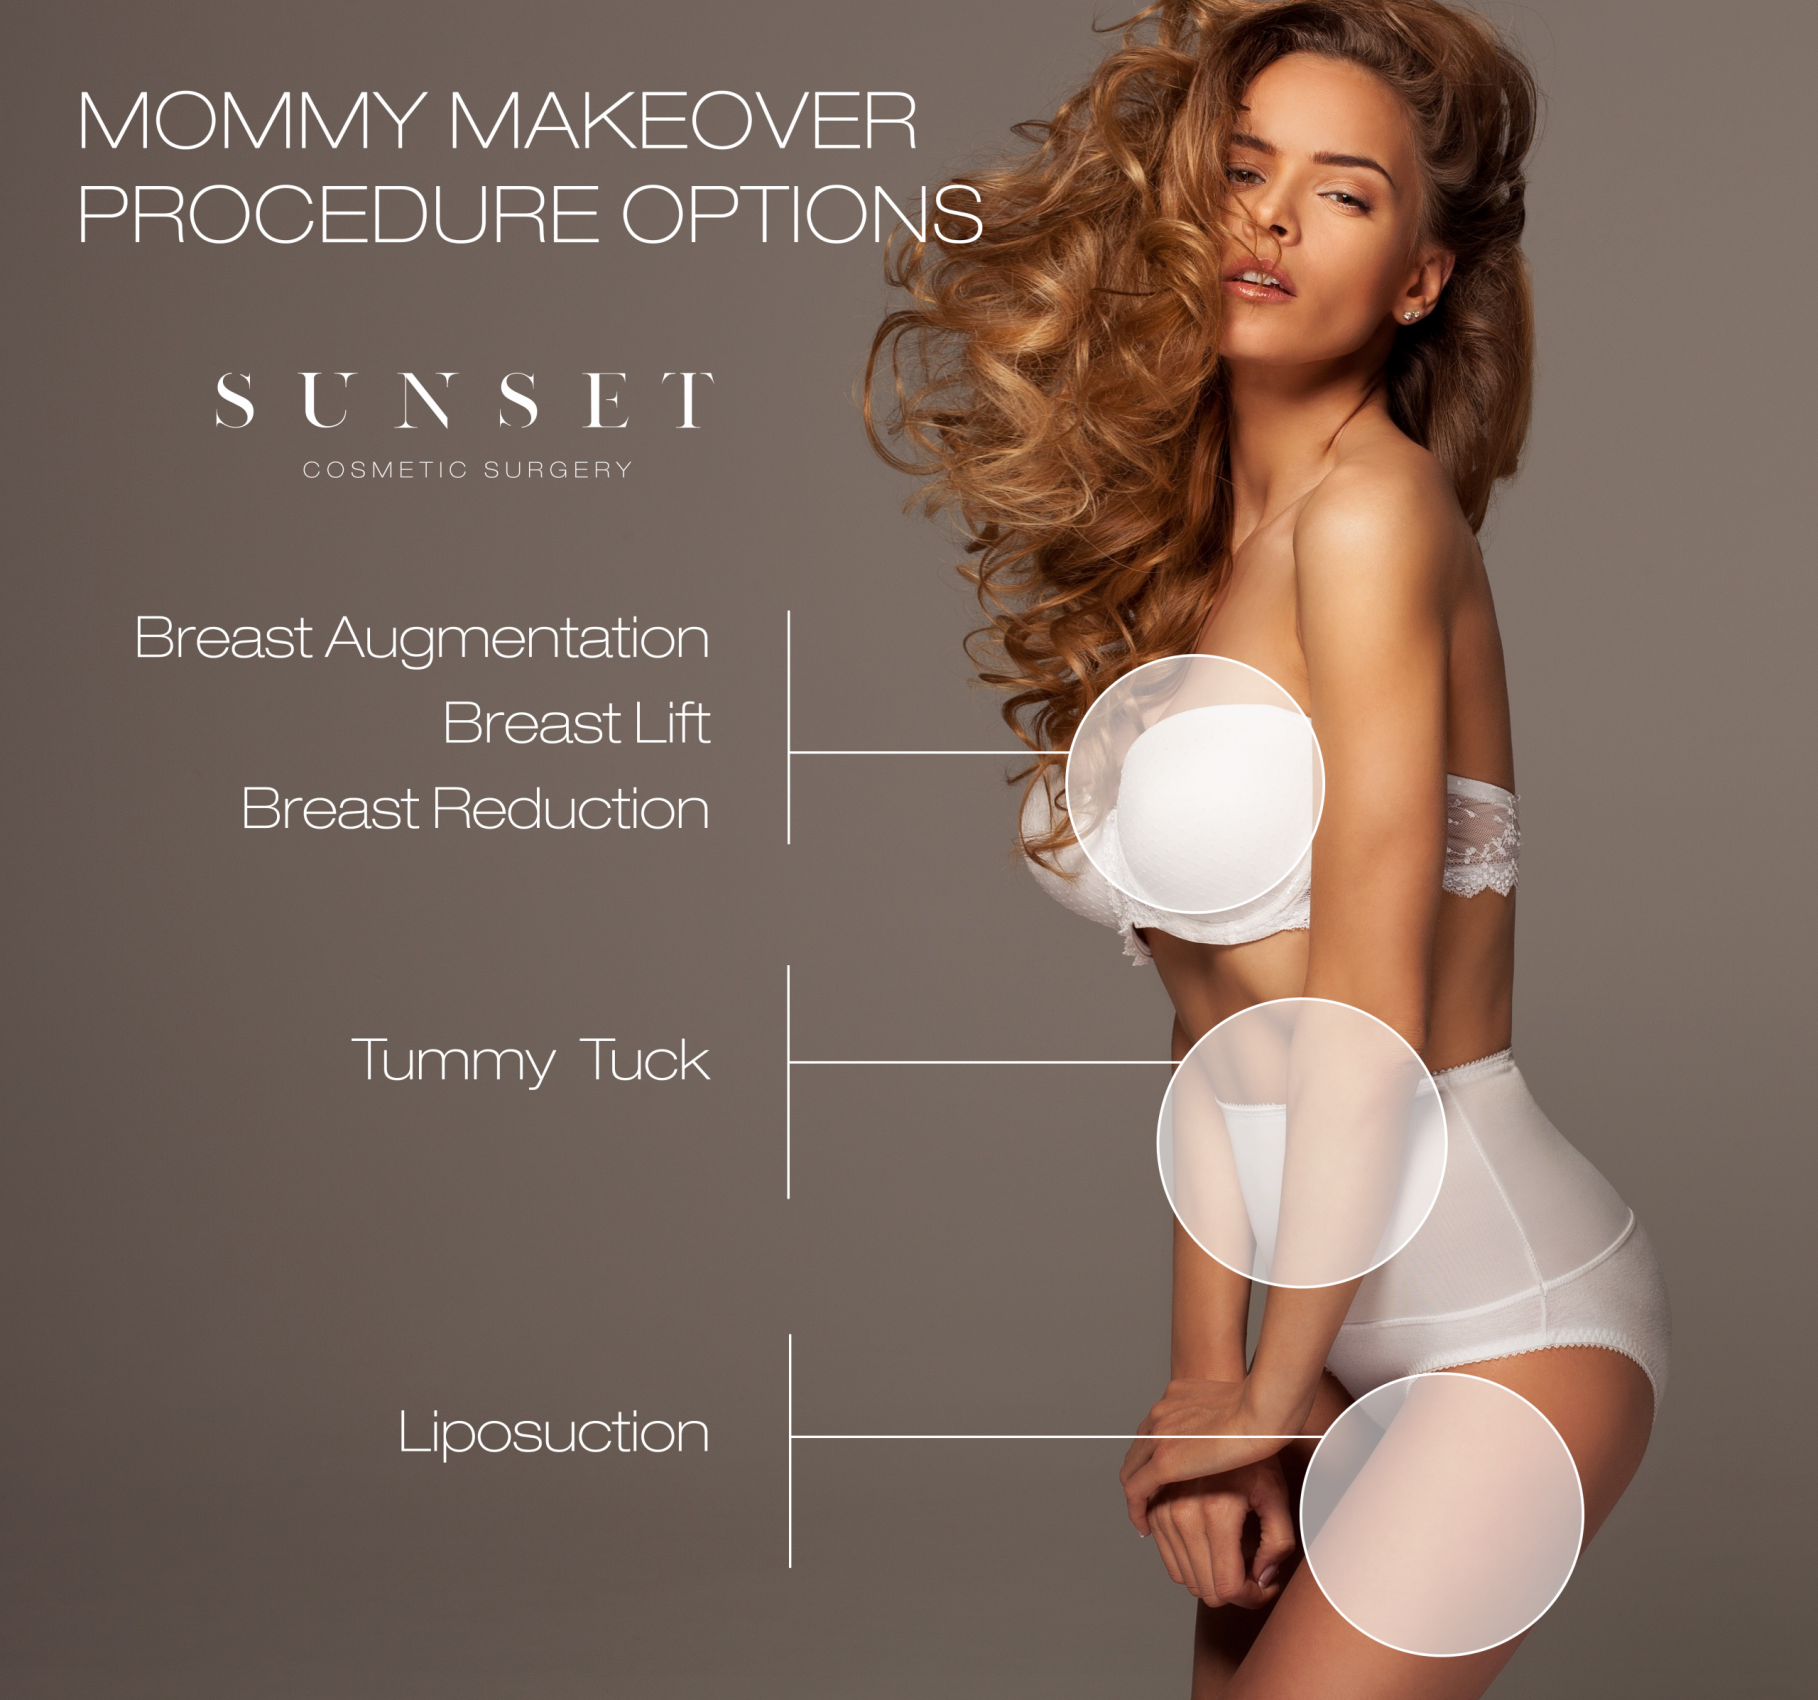 Mommy Makeover Procedure Options smaller